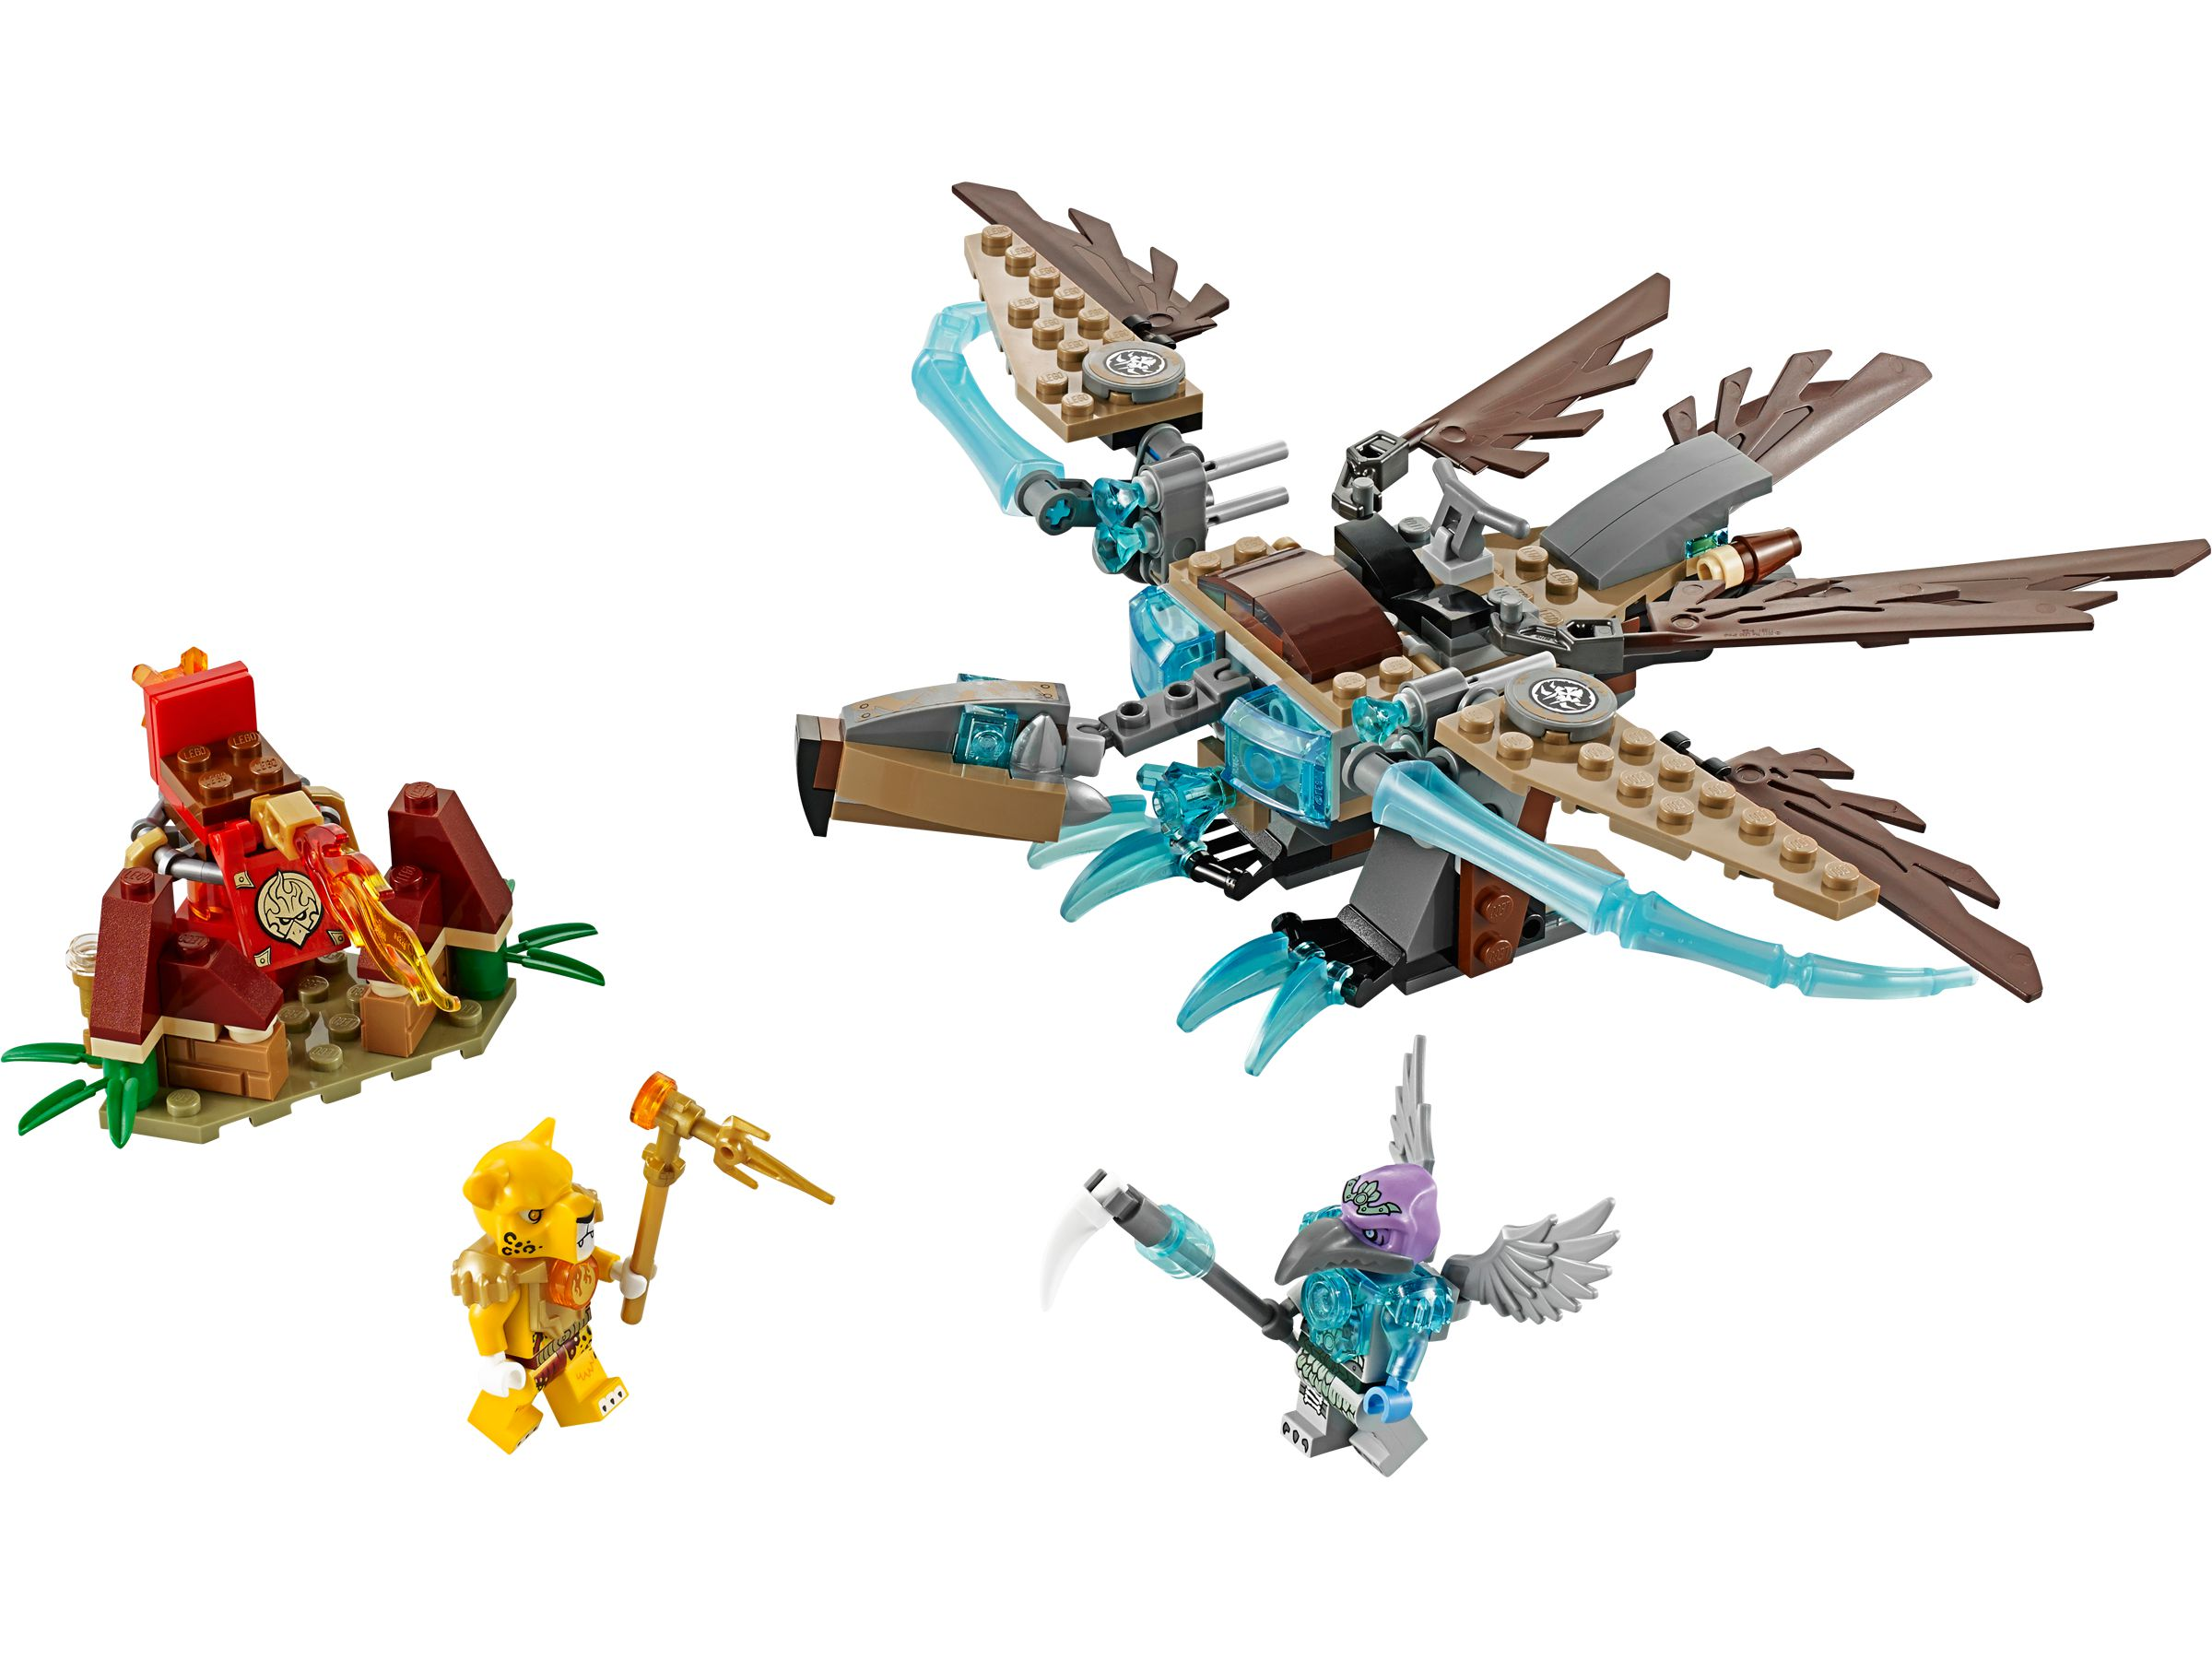 LEGO Legends Of Chima 70141 Vardys Eis-Gleiter LEGO_70141.jpg